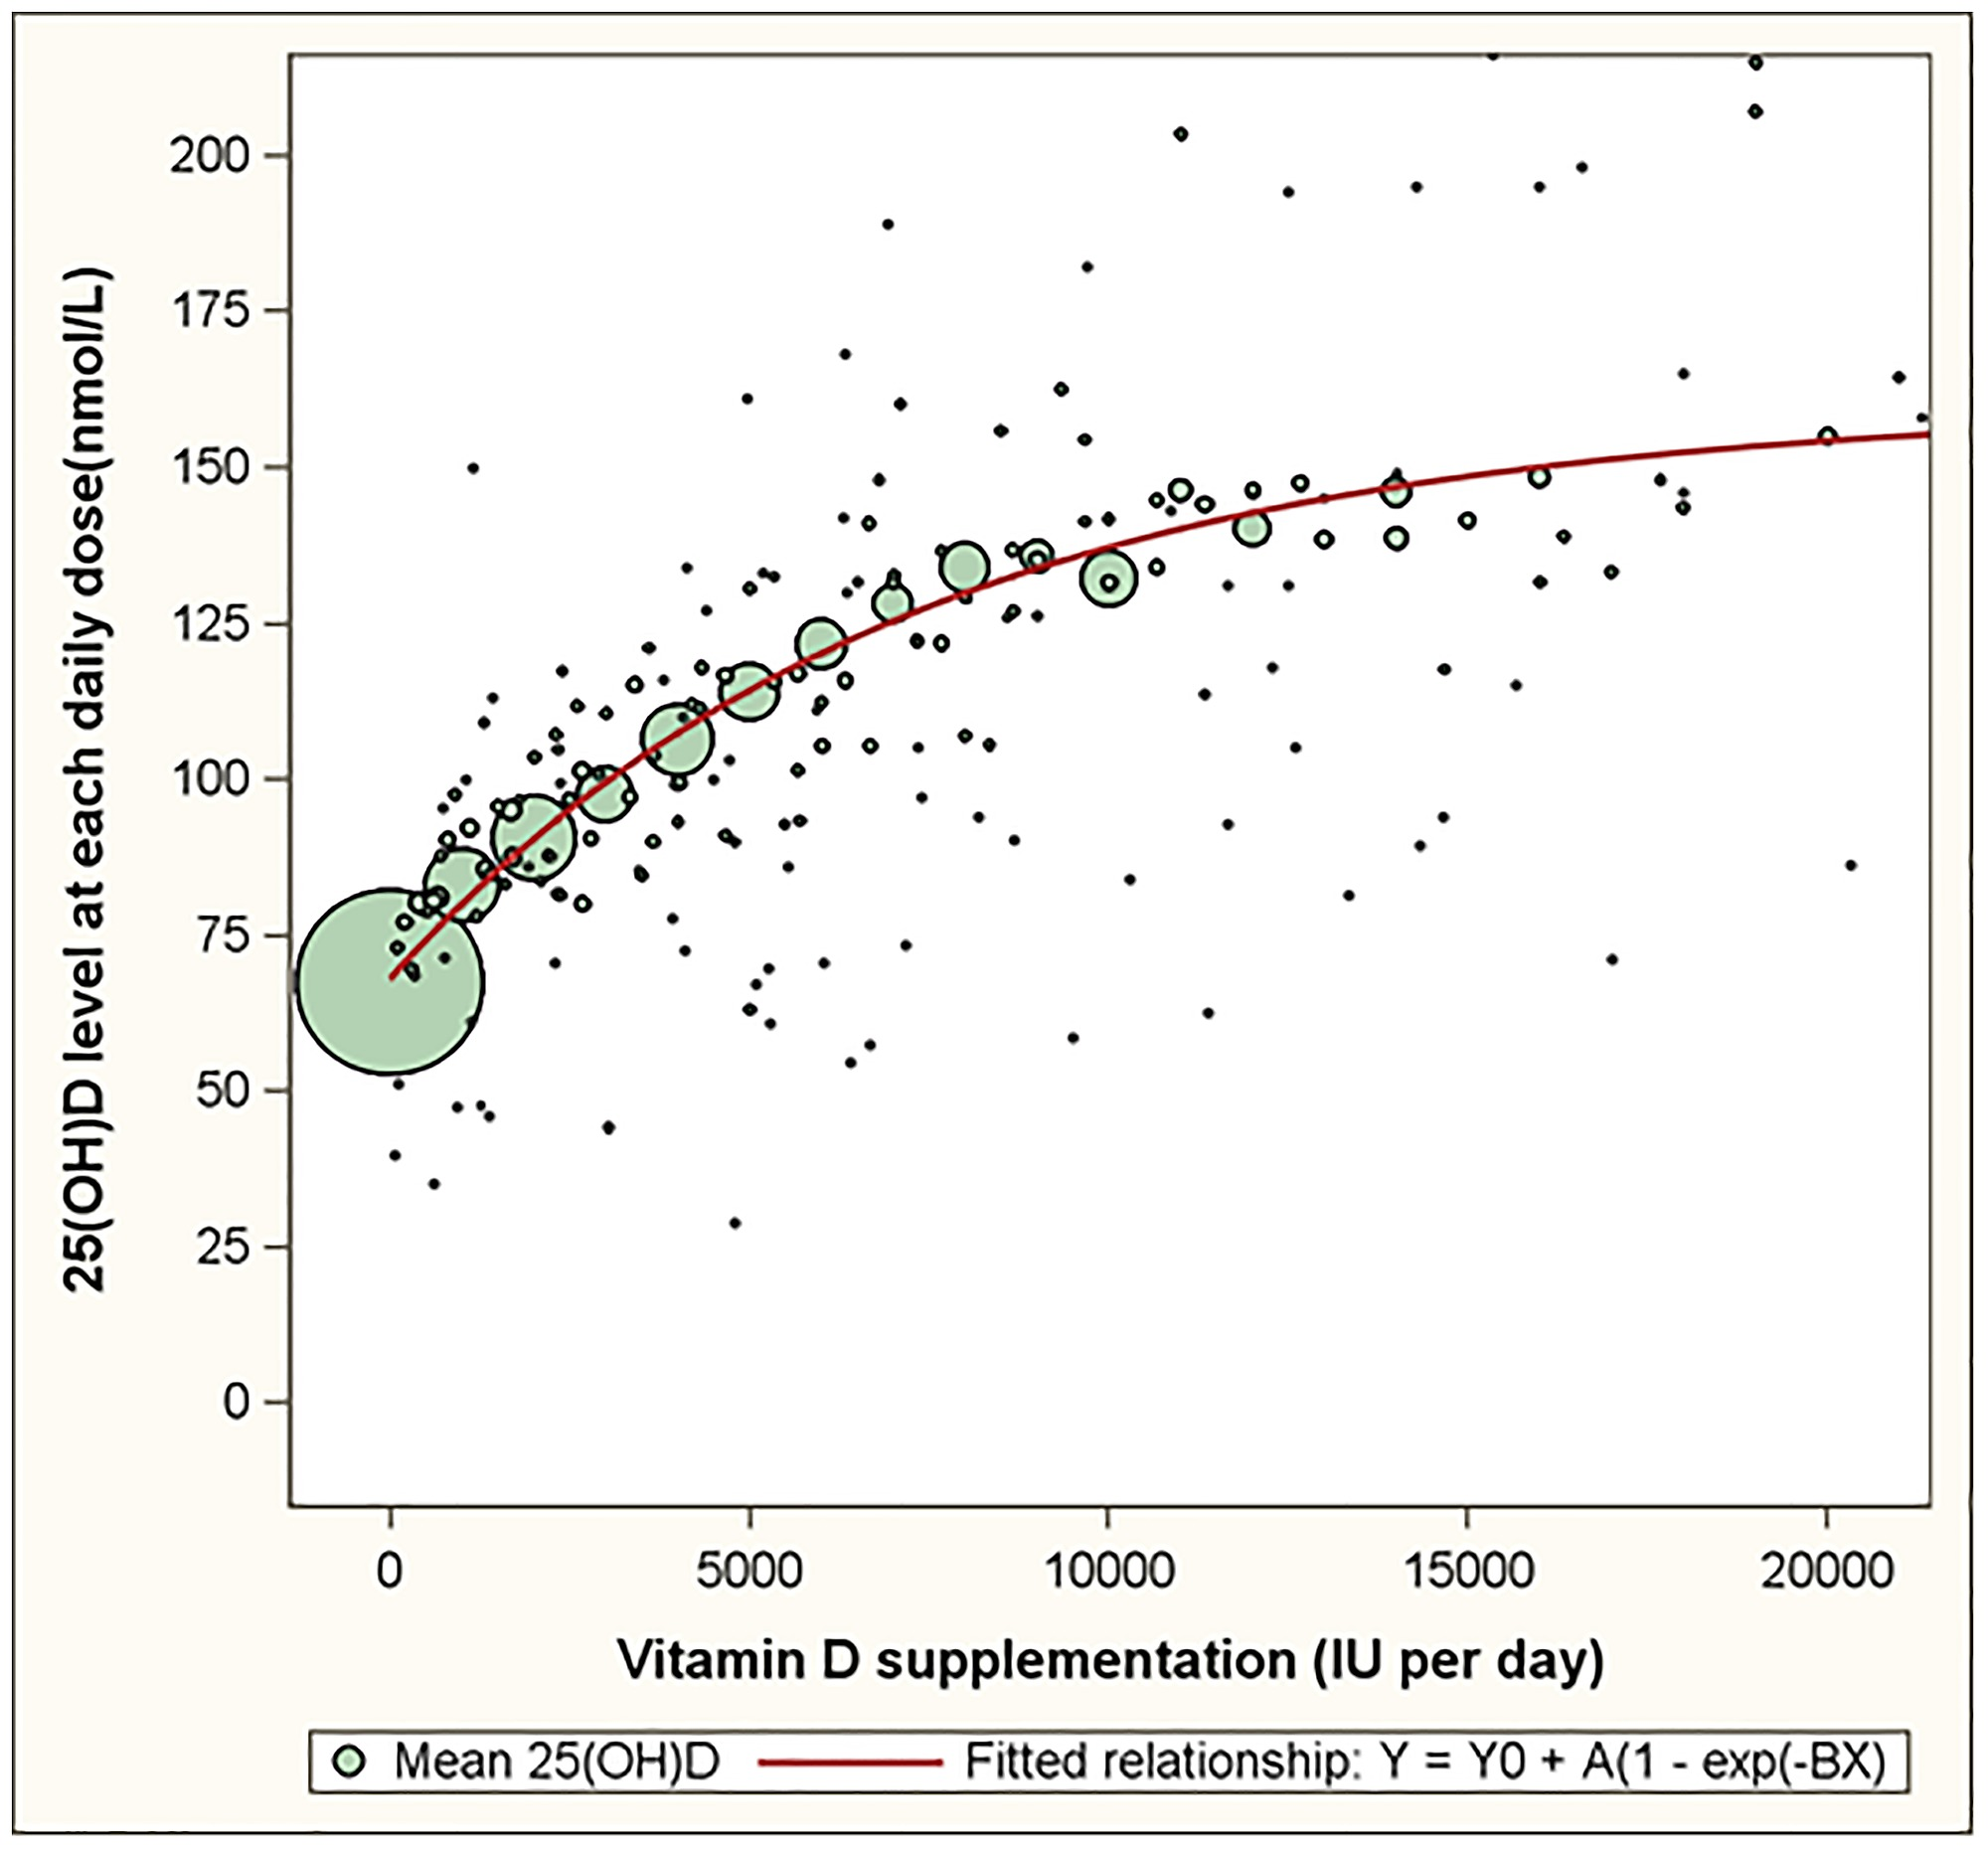 The dose response relationship between oral vitamin D supplementation and  serum 25(OH)D levels based on 22,214 observations of healthy volunteers.